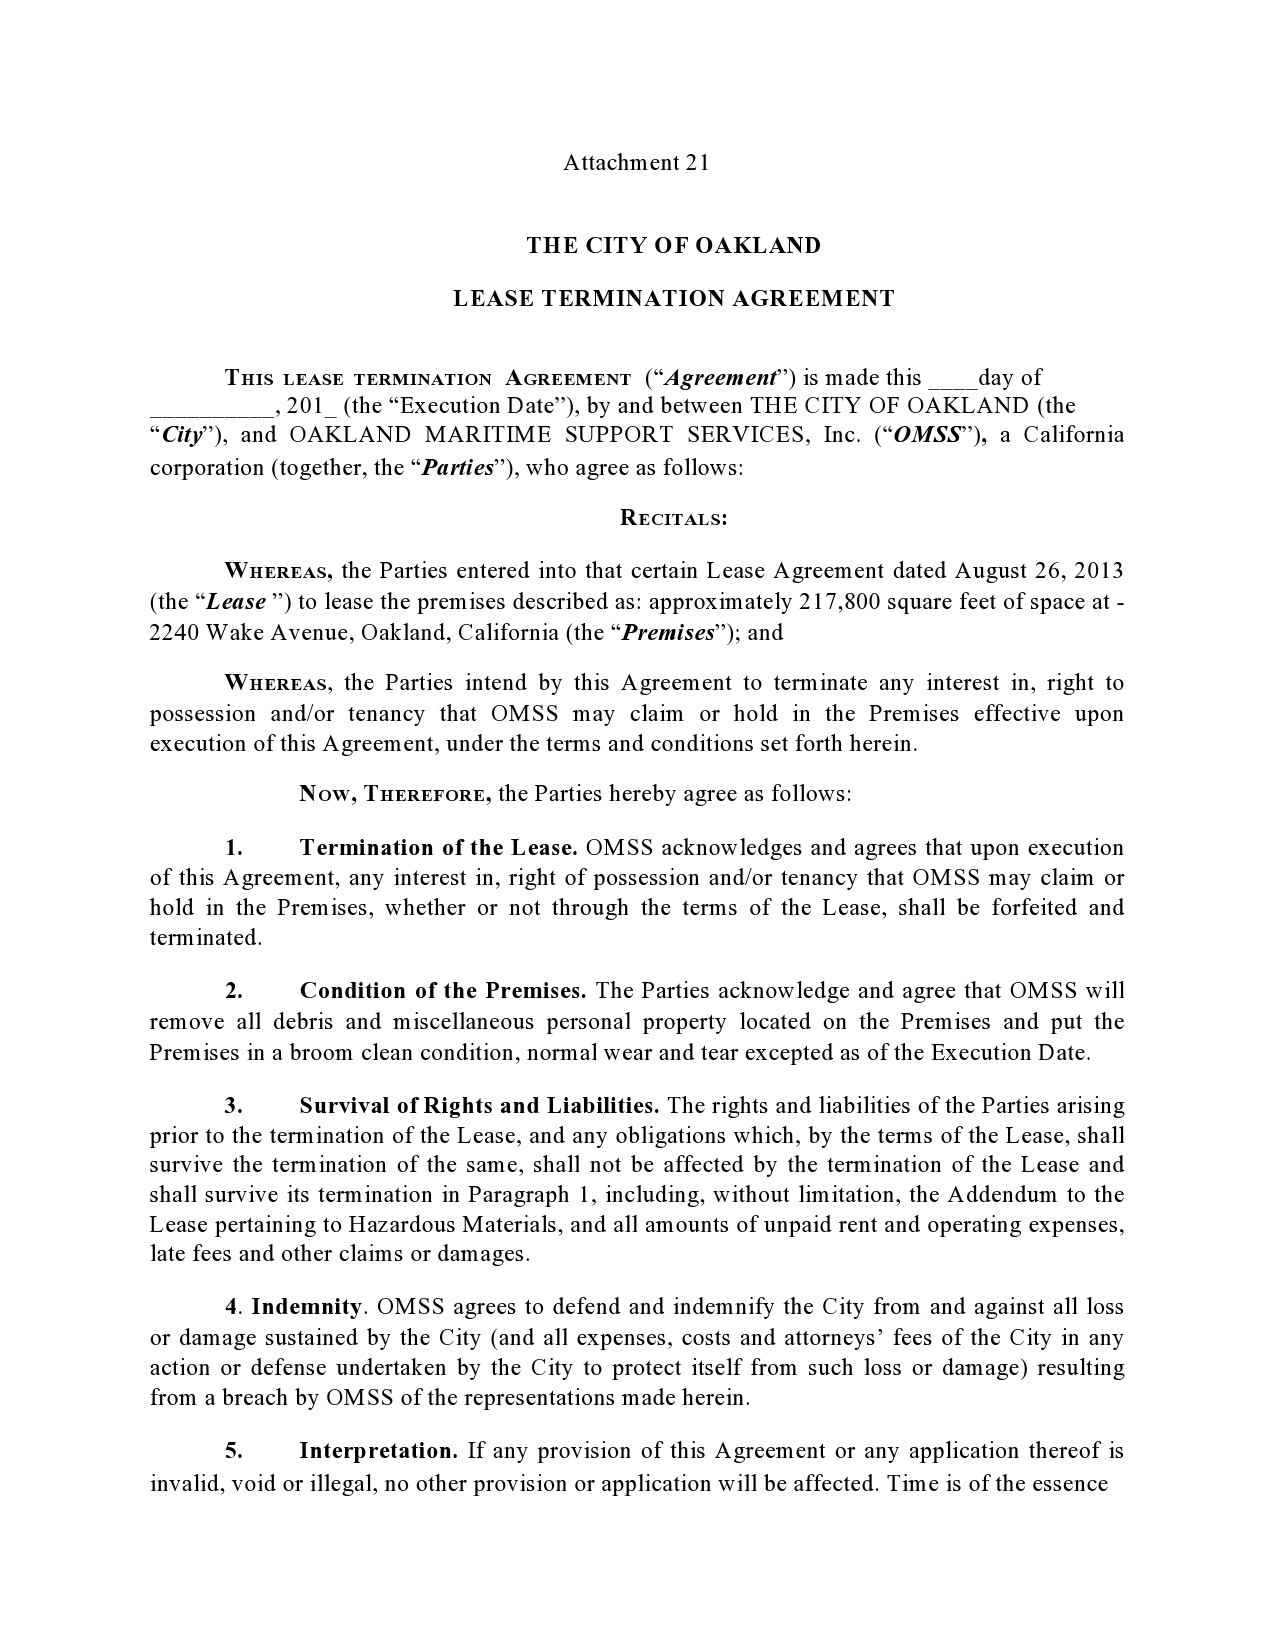 Free lease termination agreement 25